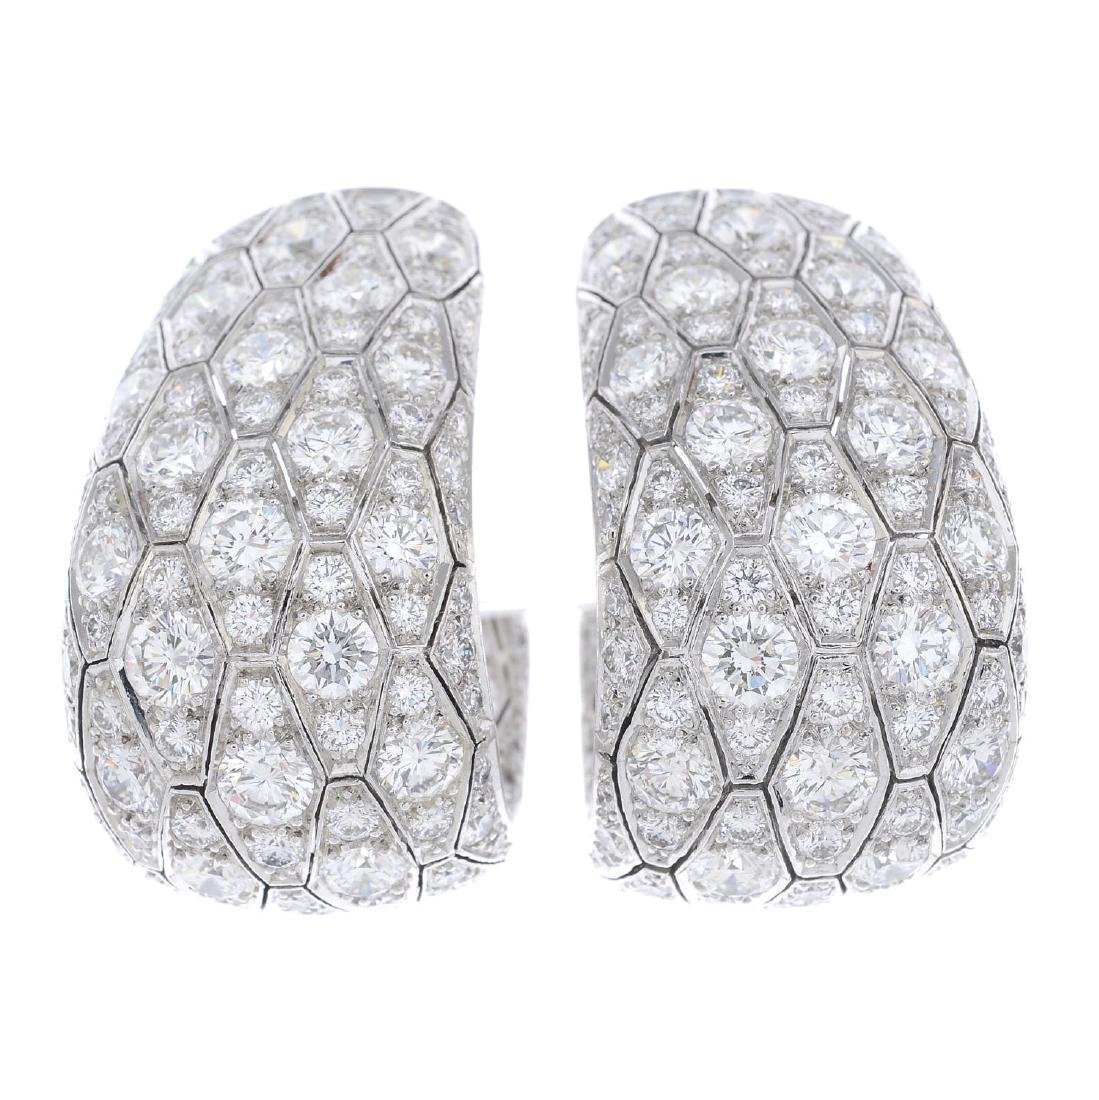 CARTIER - a pair of diamond earrings. Each designed as